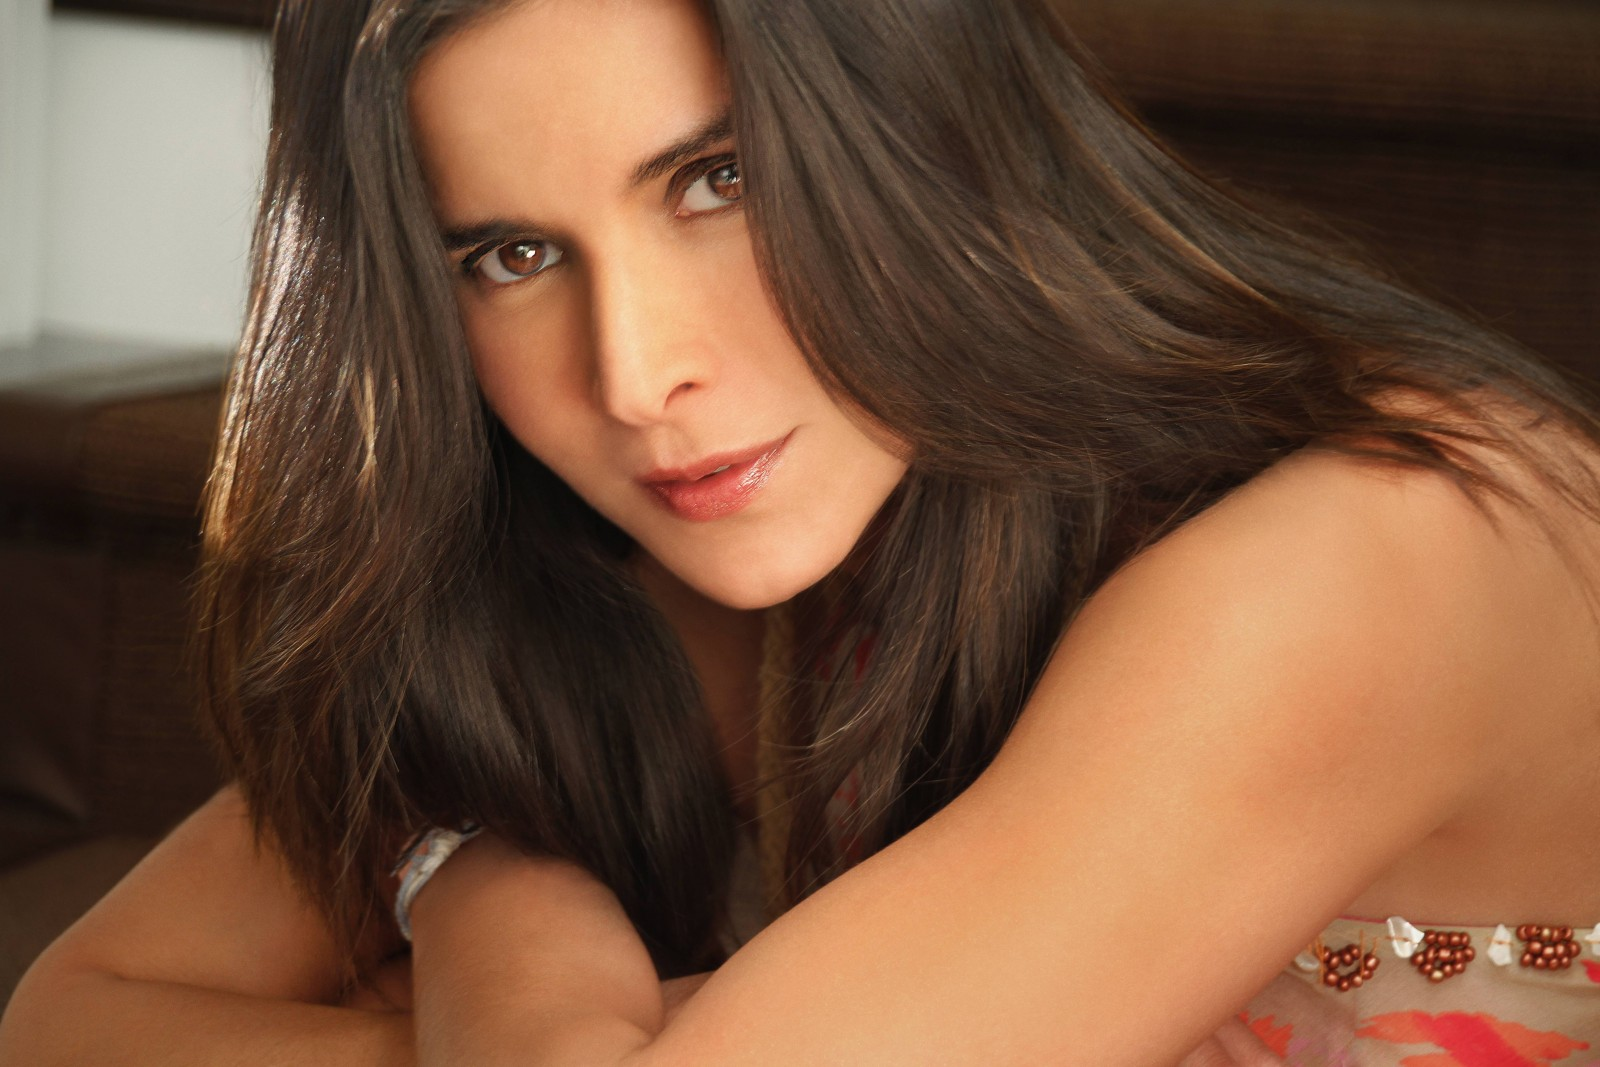 Young Patricia Velasquez nudes (66 foto and video), Ass, Leaked, Boobs, bra 2019